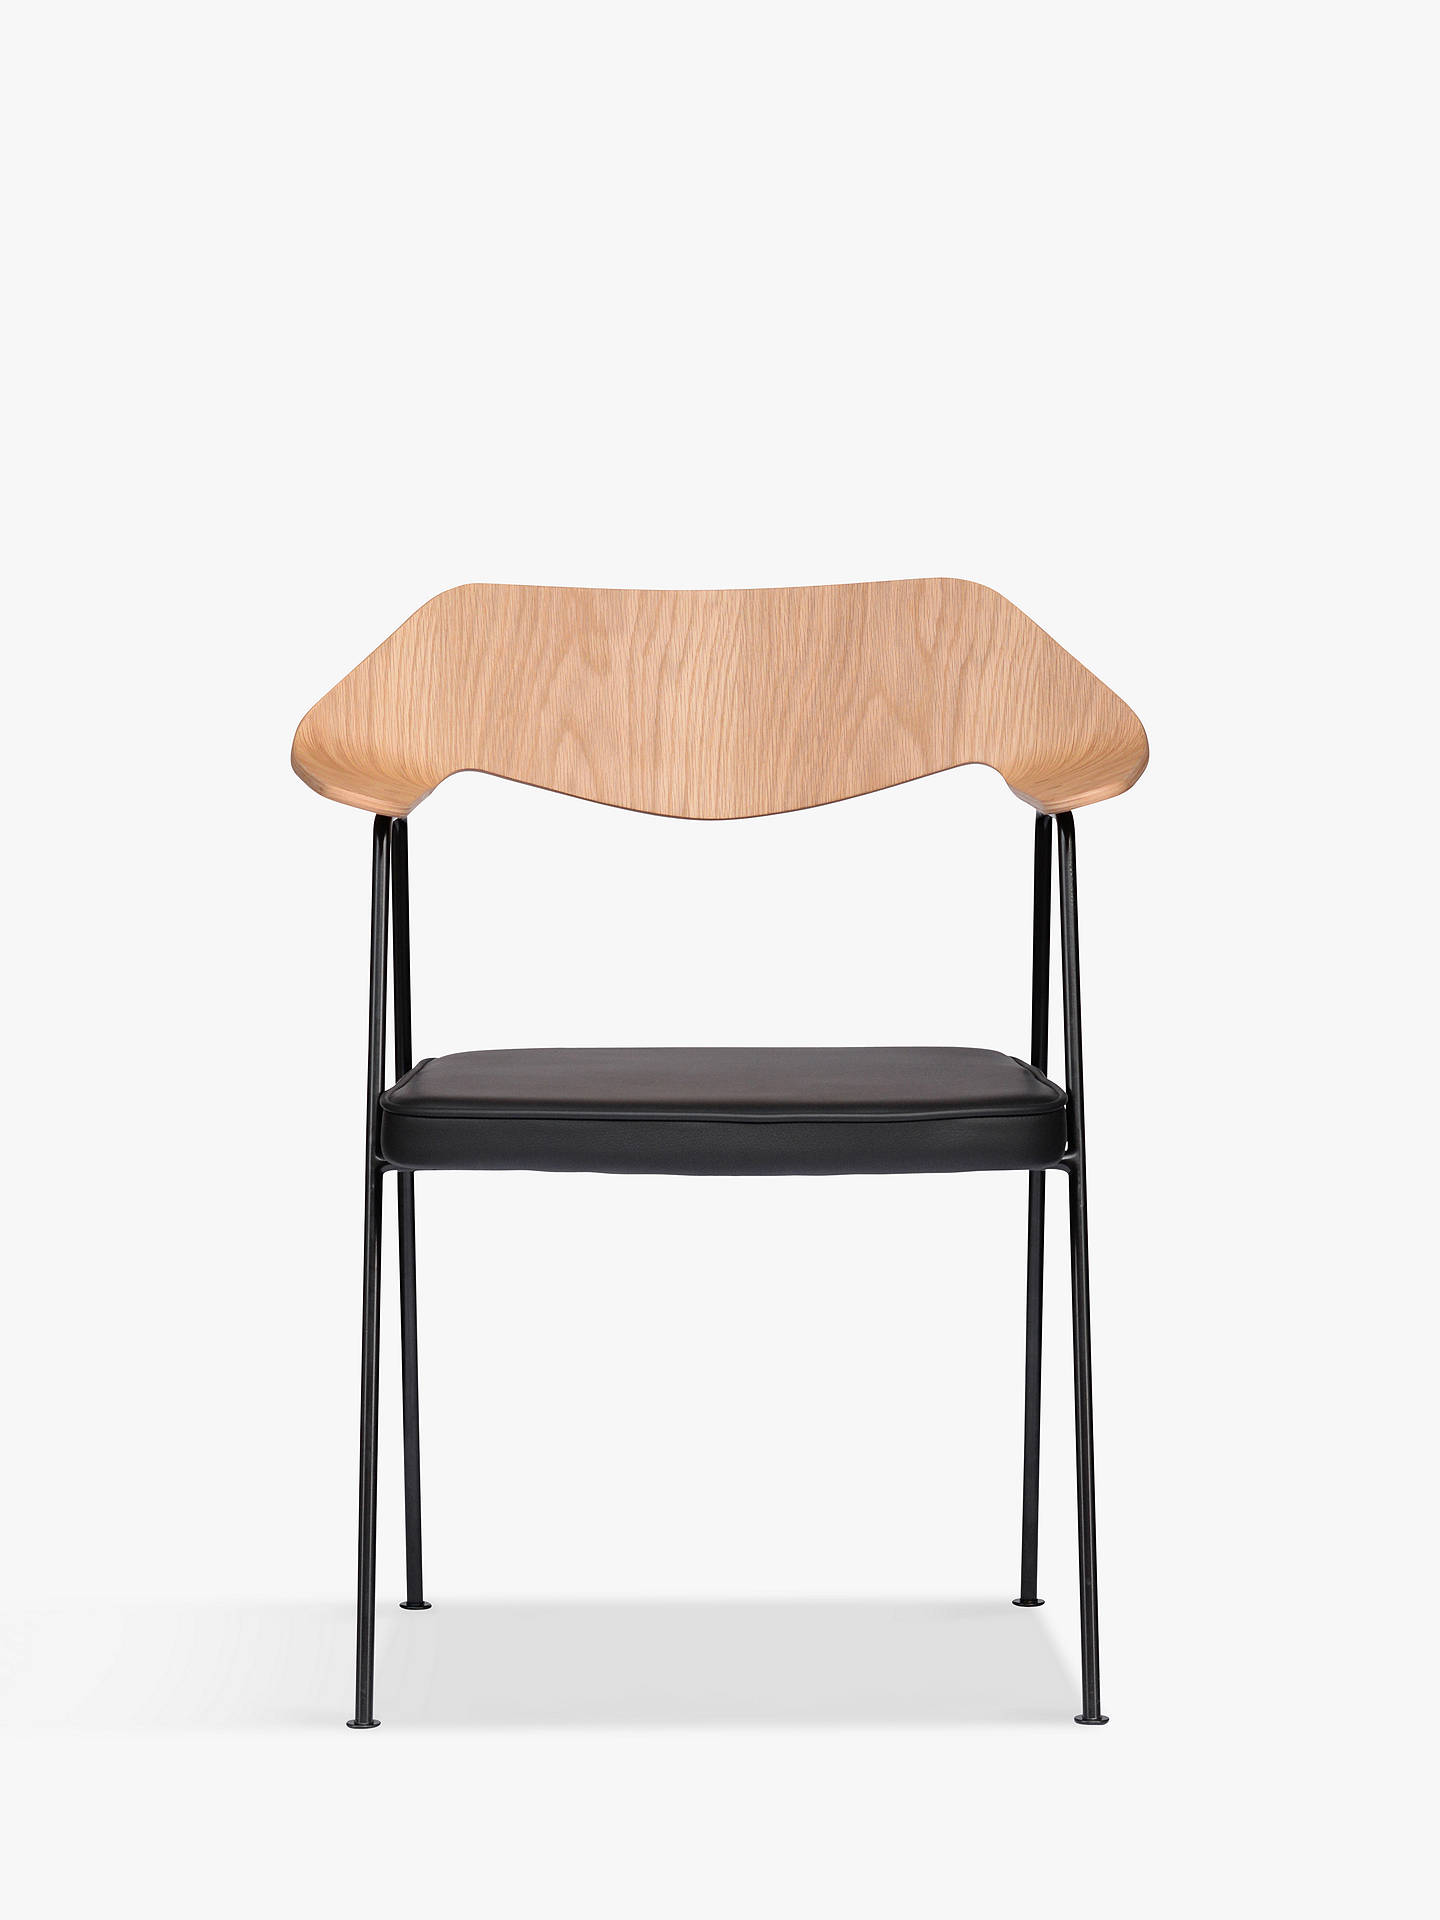 Case Robin Day 675 Chair At John Lewis Partners